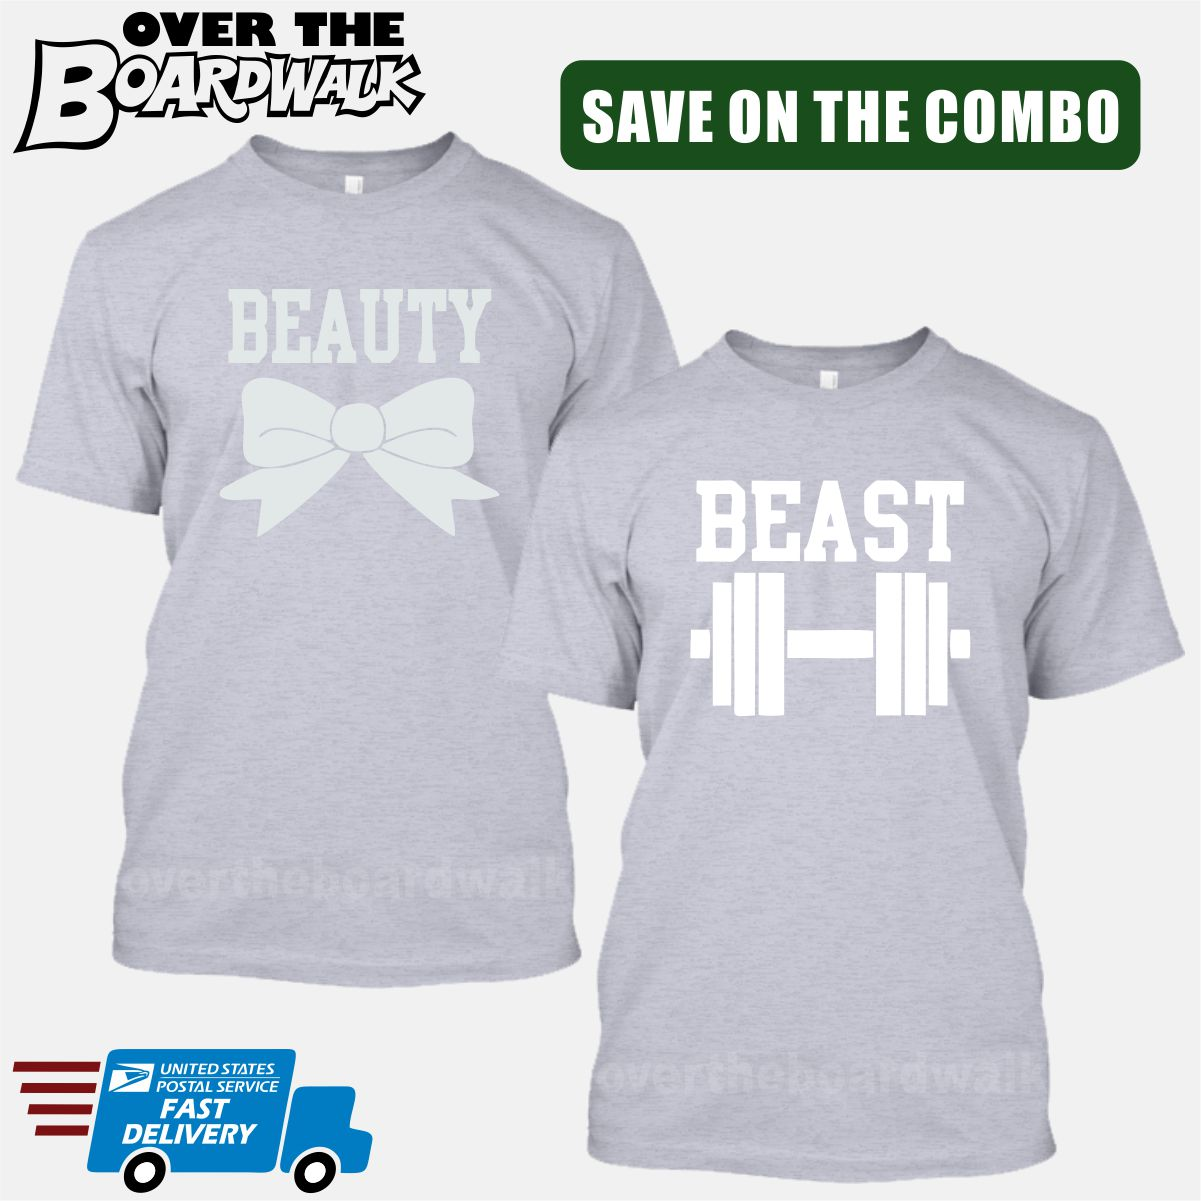 4ec39480f8 ... Beauty and Beast COMBO - Matching His and Her Couples Love Relationship  [T-shirts ...